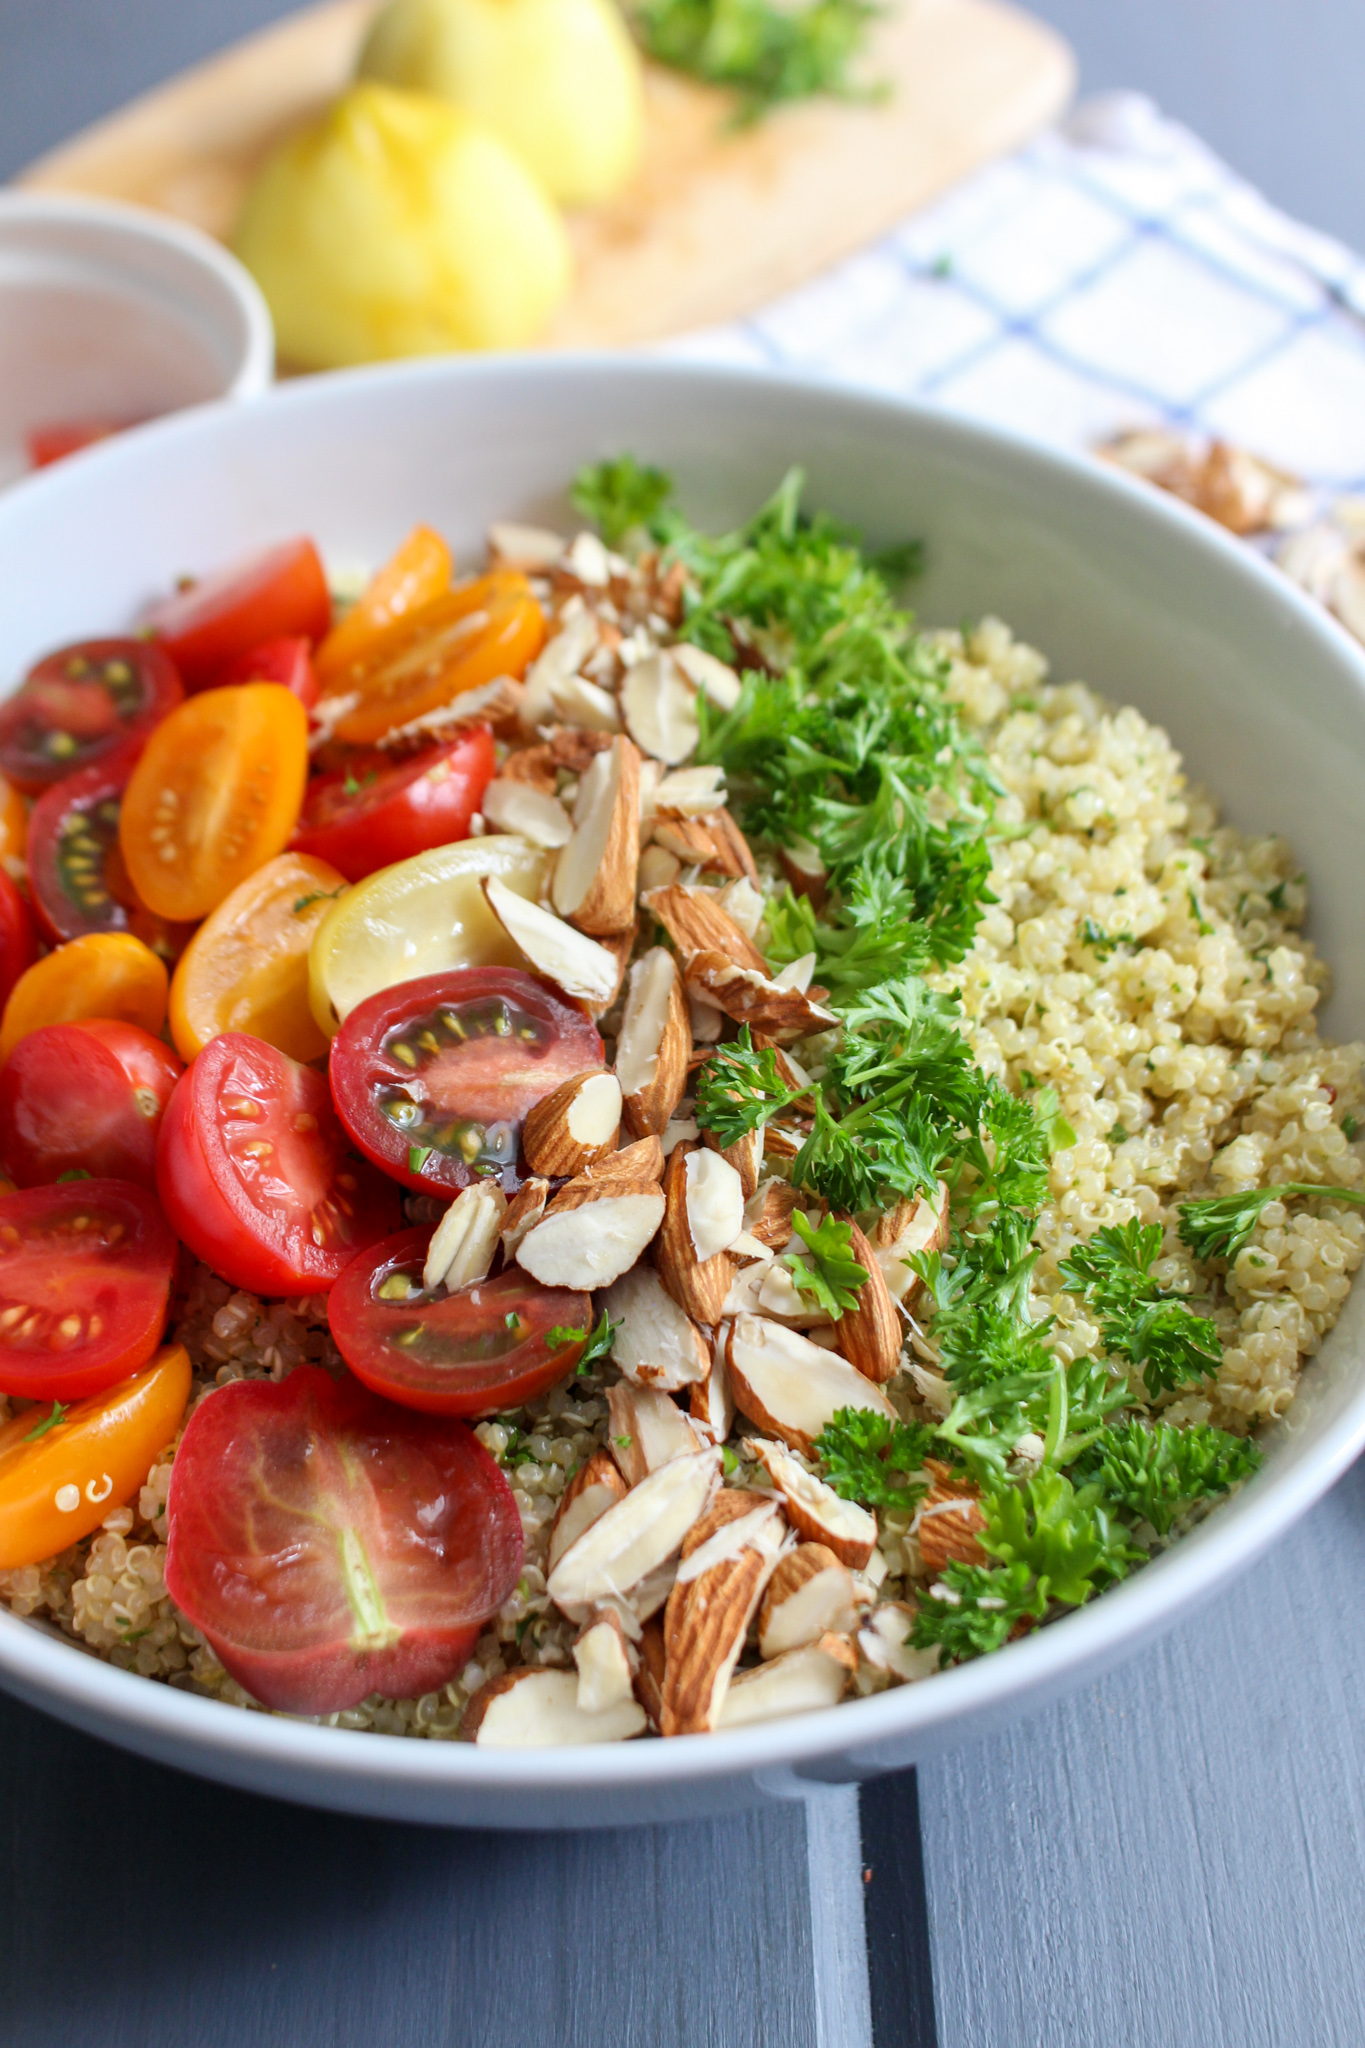 Bowl of quinoa salad with parsley, almonds, and tricolor grape tomatoes